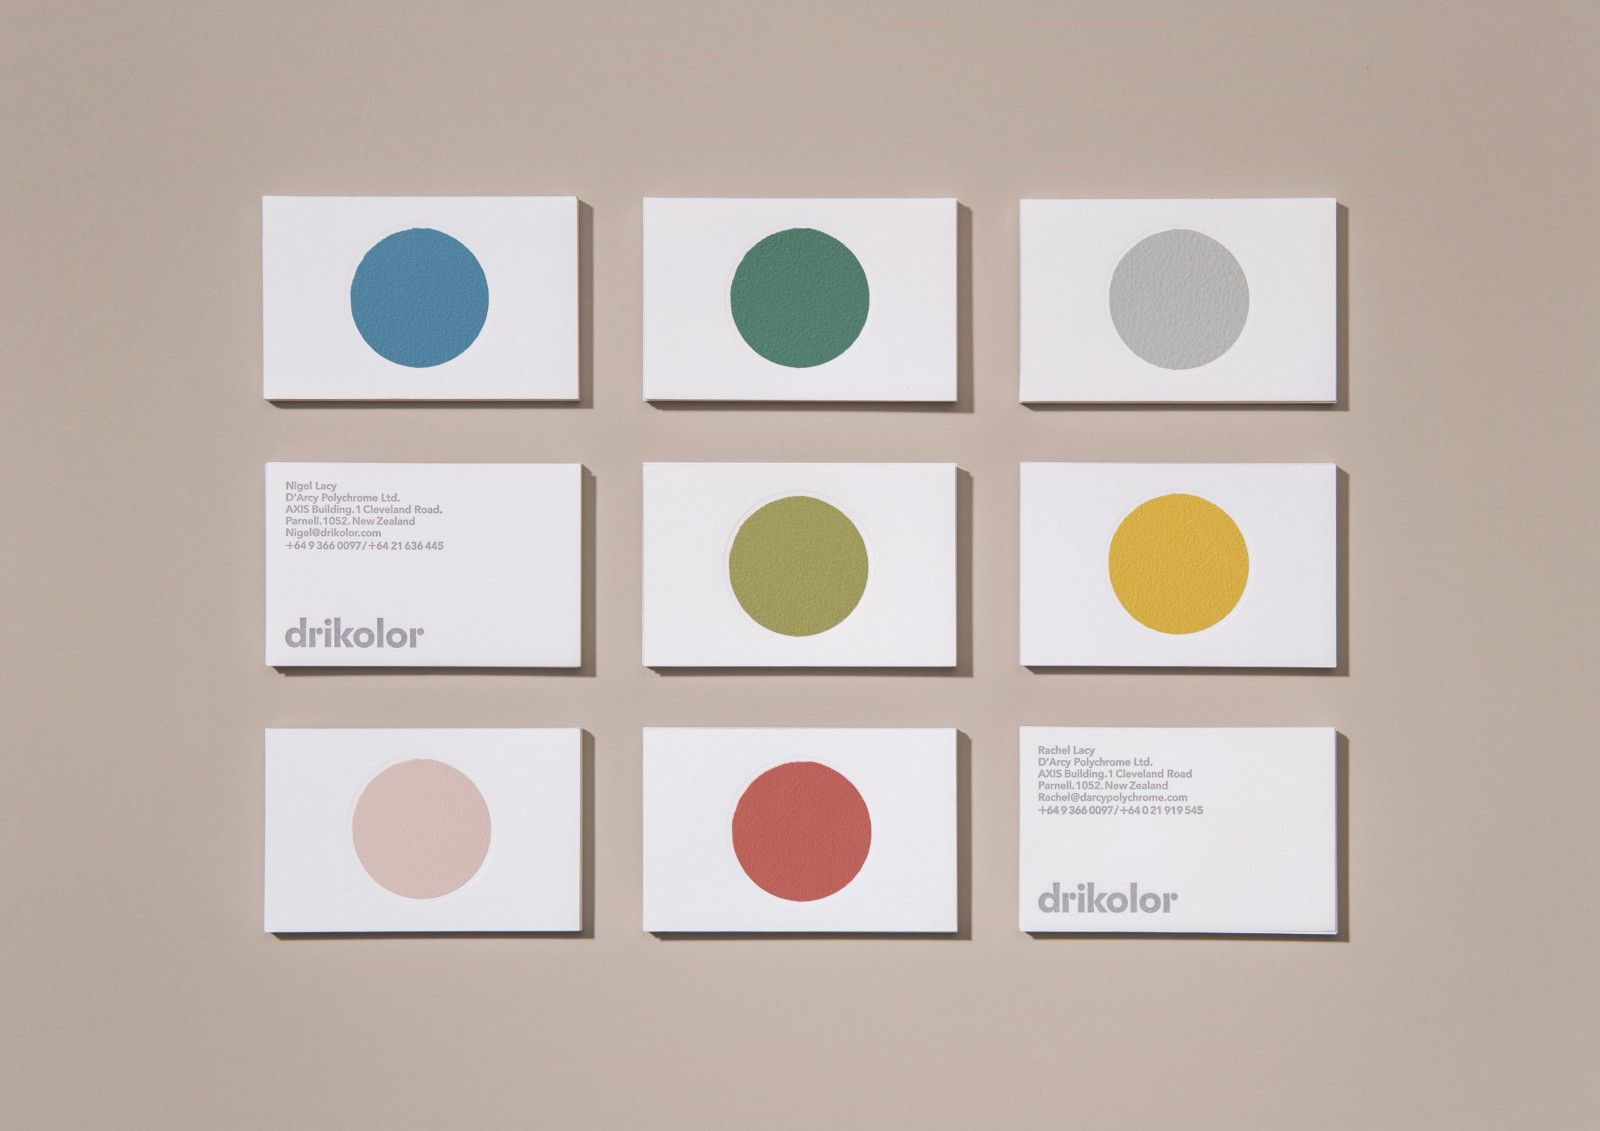 Drikolor visual identity and business cards designed by Inhouse